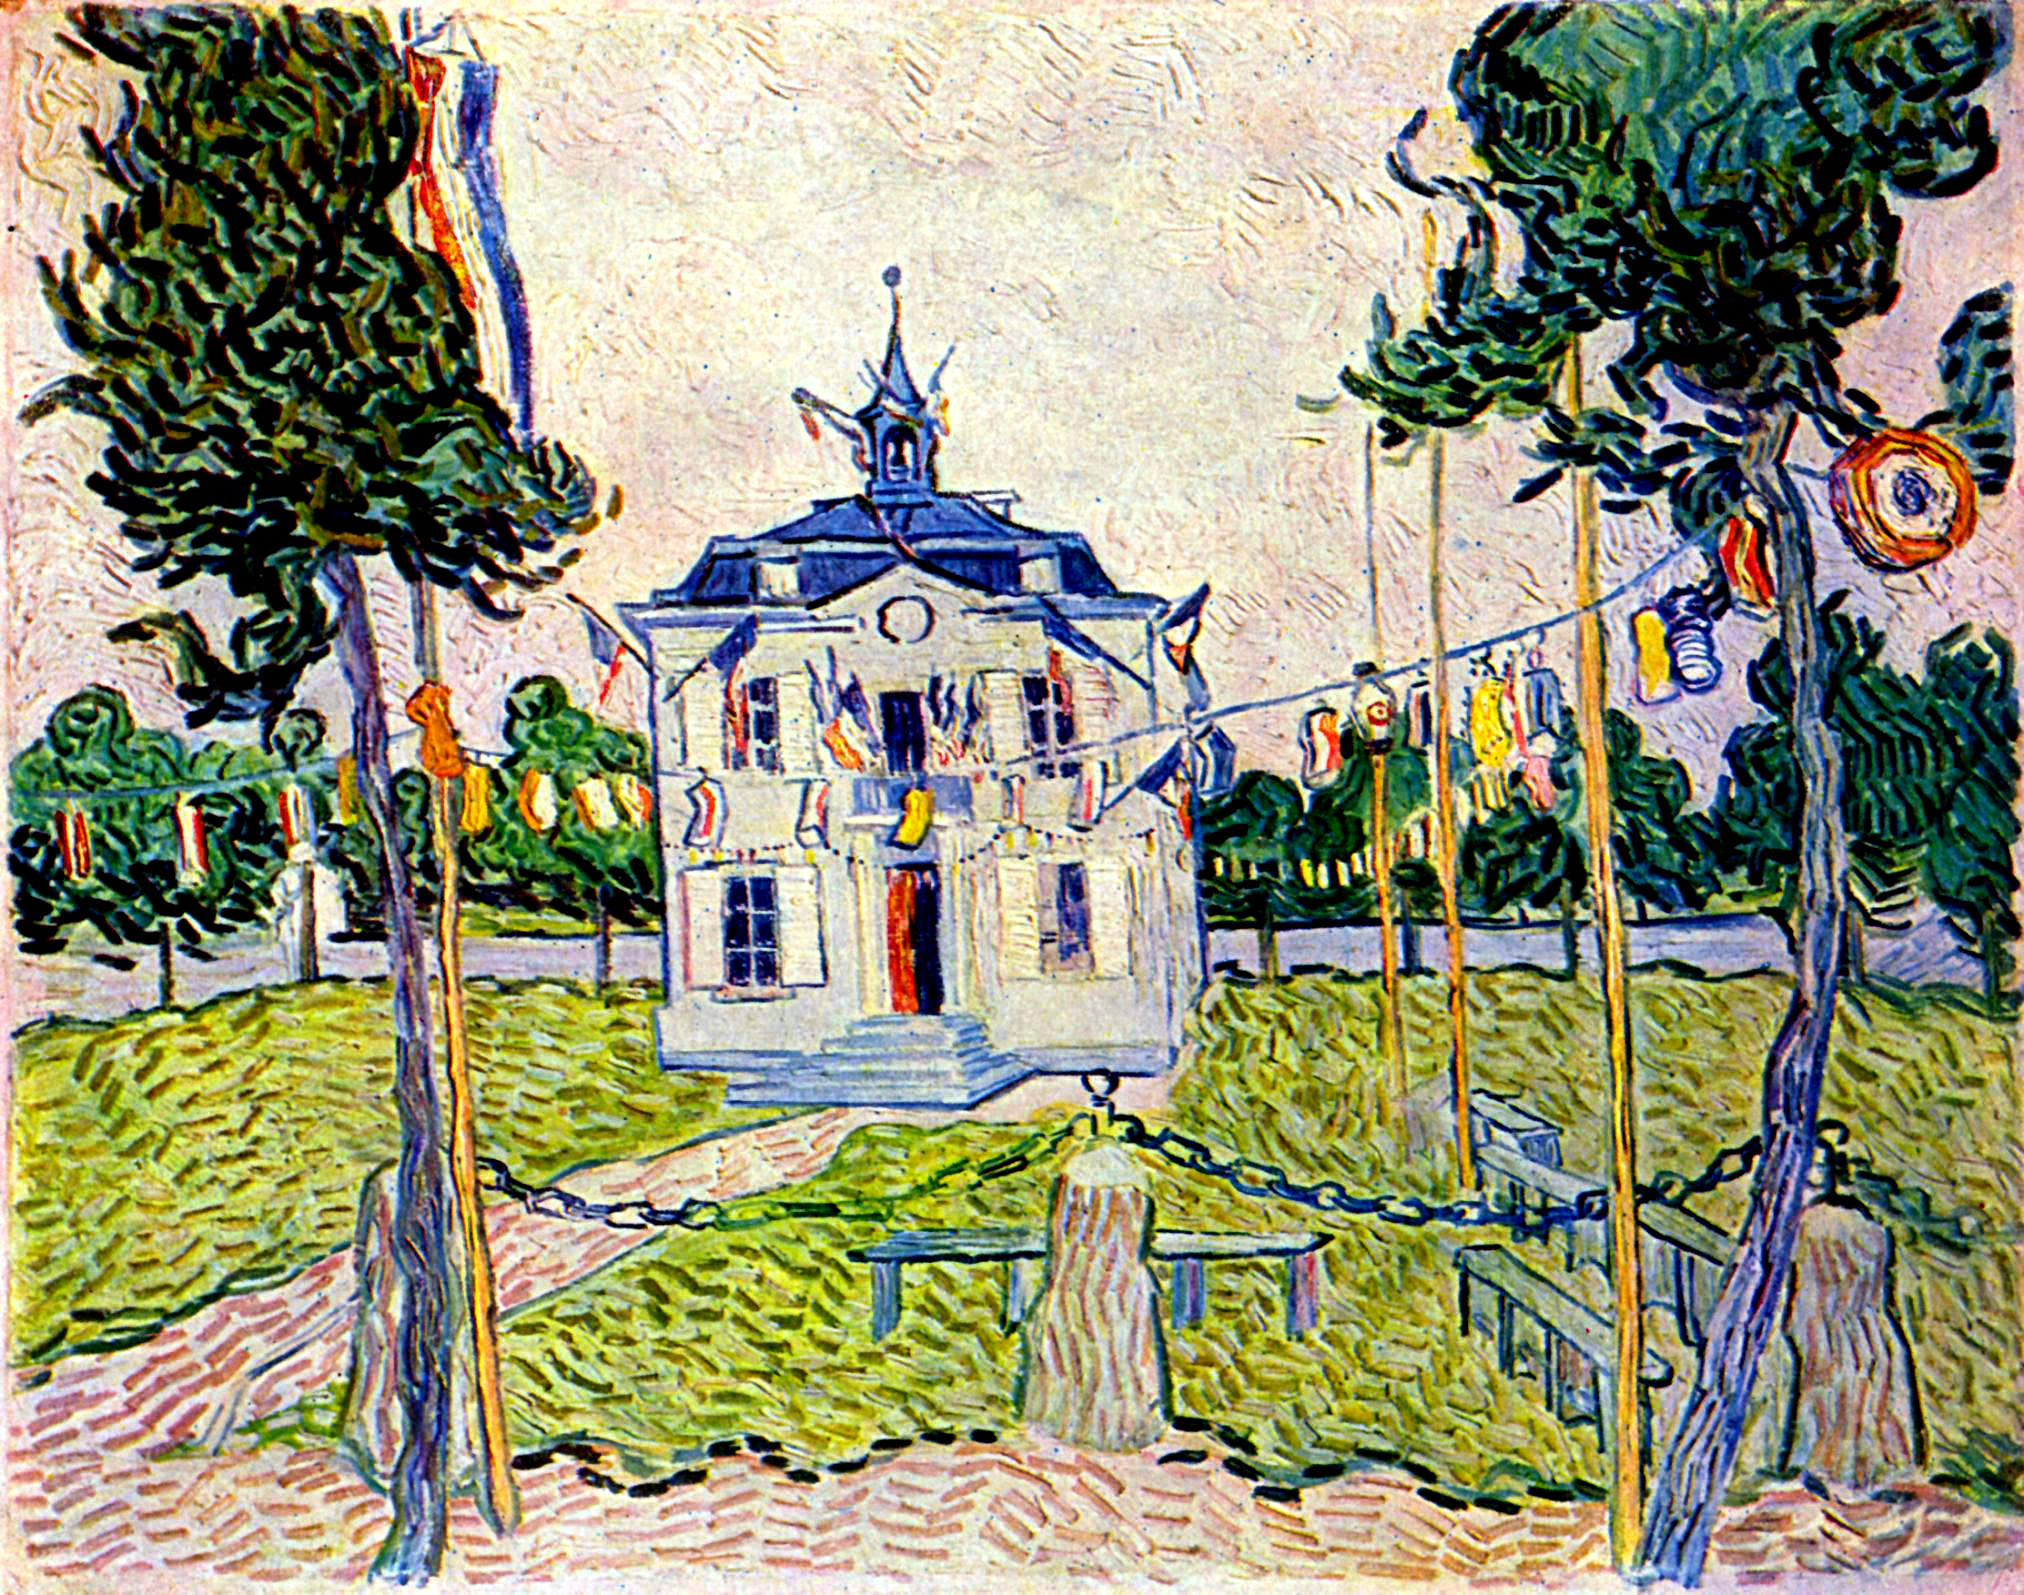 Auvers Town Hall in 14 July 1890 - Vincent van Gogh - WikiPaintings.vincent town